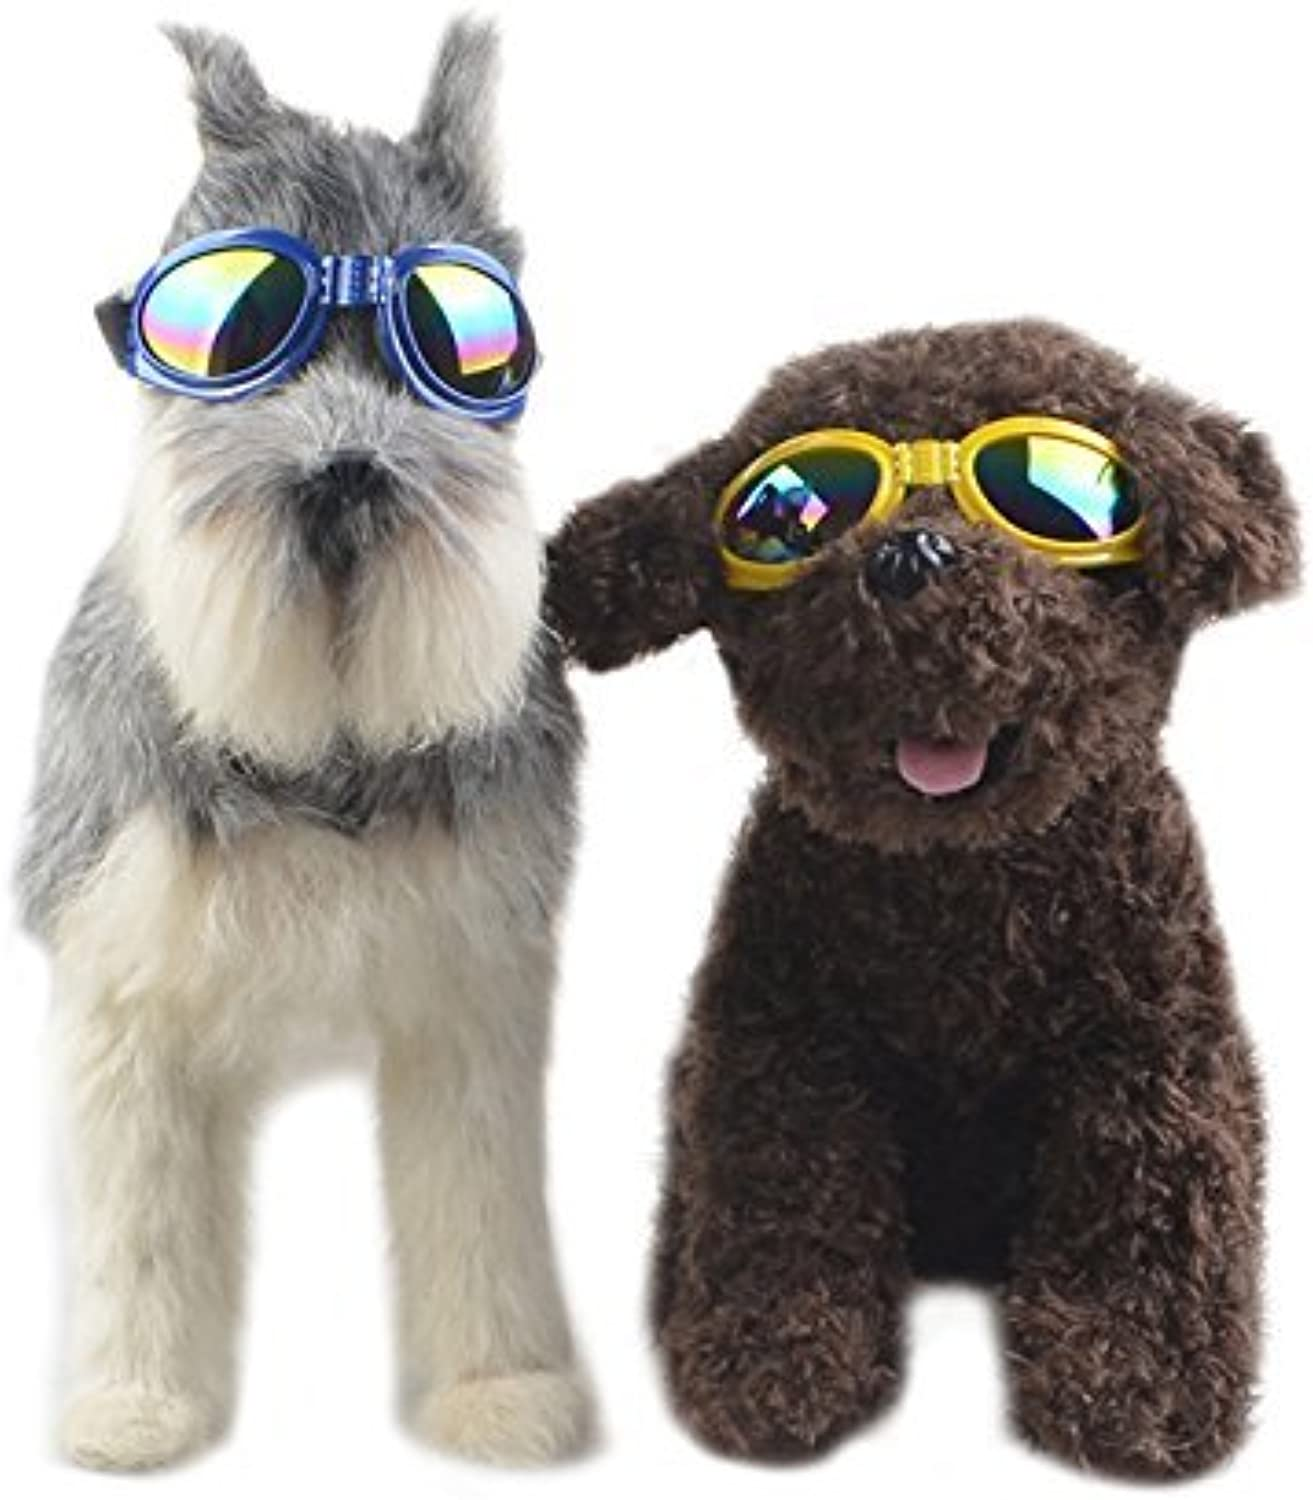 IFashion Pet Sunglasses for Travel, Skiing,Surfing,Driving with Fashionable Waterproof Foldable UV AntiScratch to Predect Pet Eyes (Yellow)